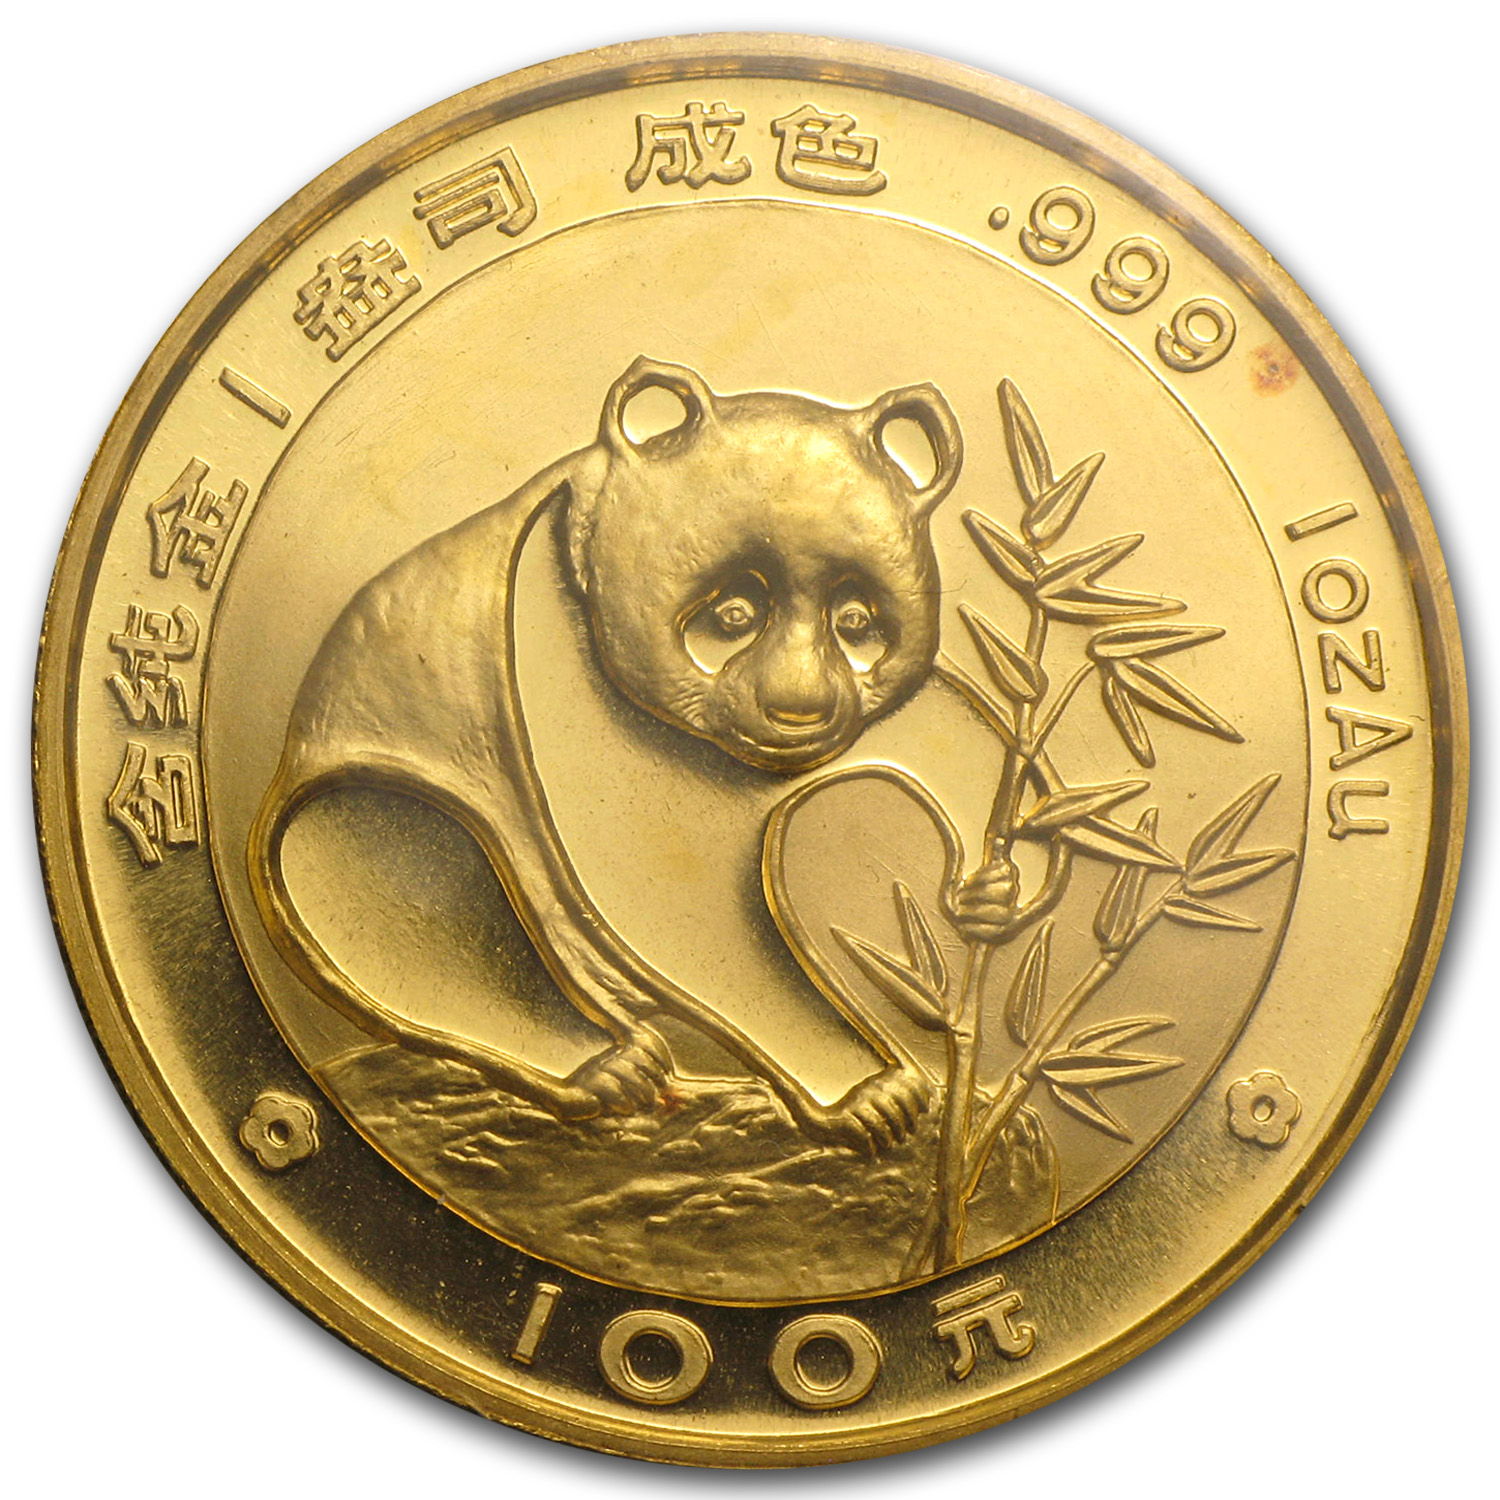 1988 China 1 oz Gold Panda BU (Sealed)